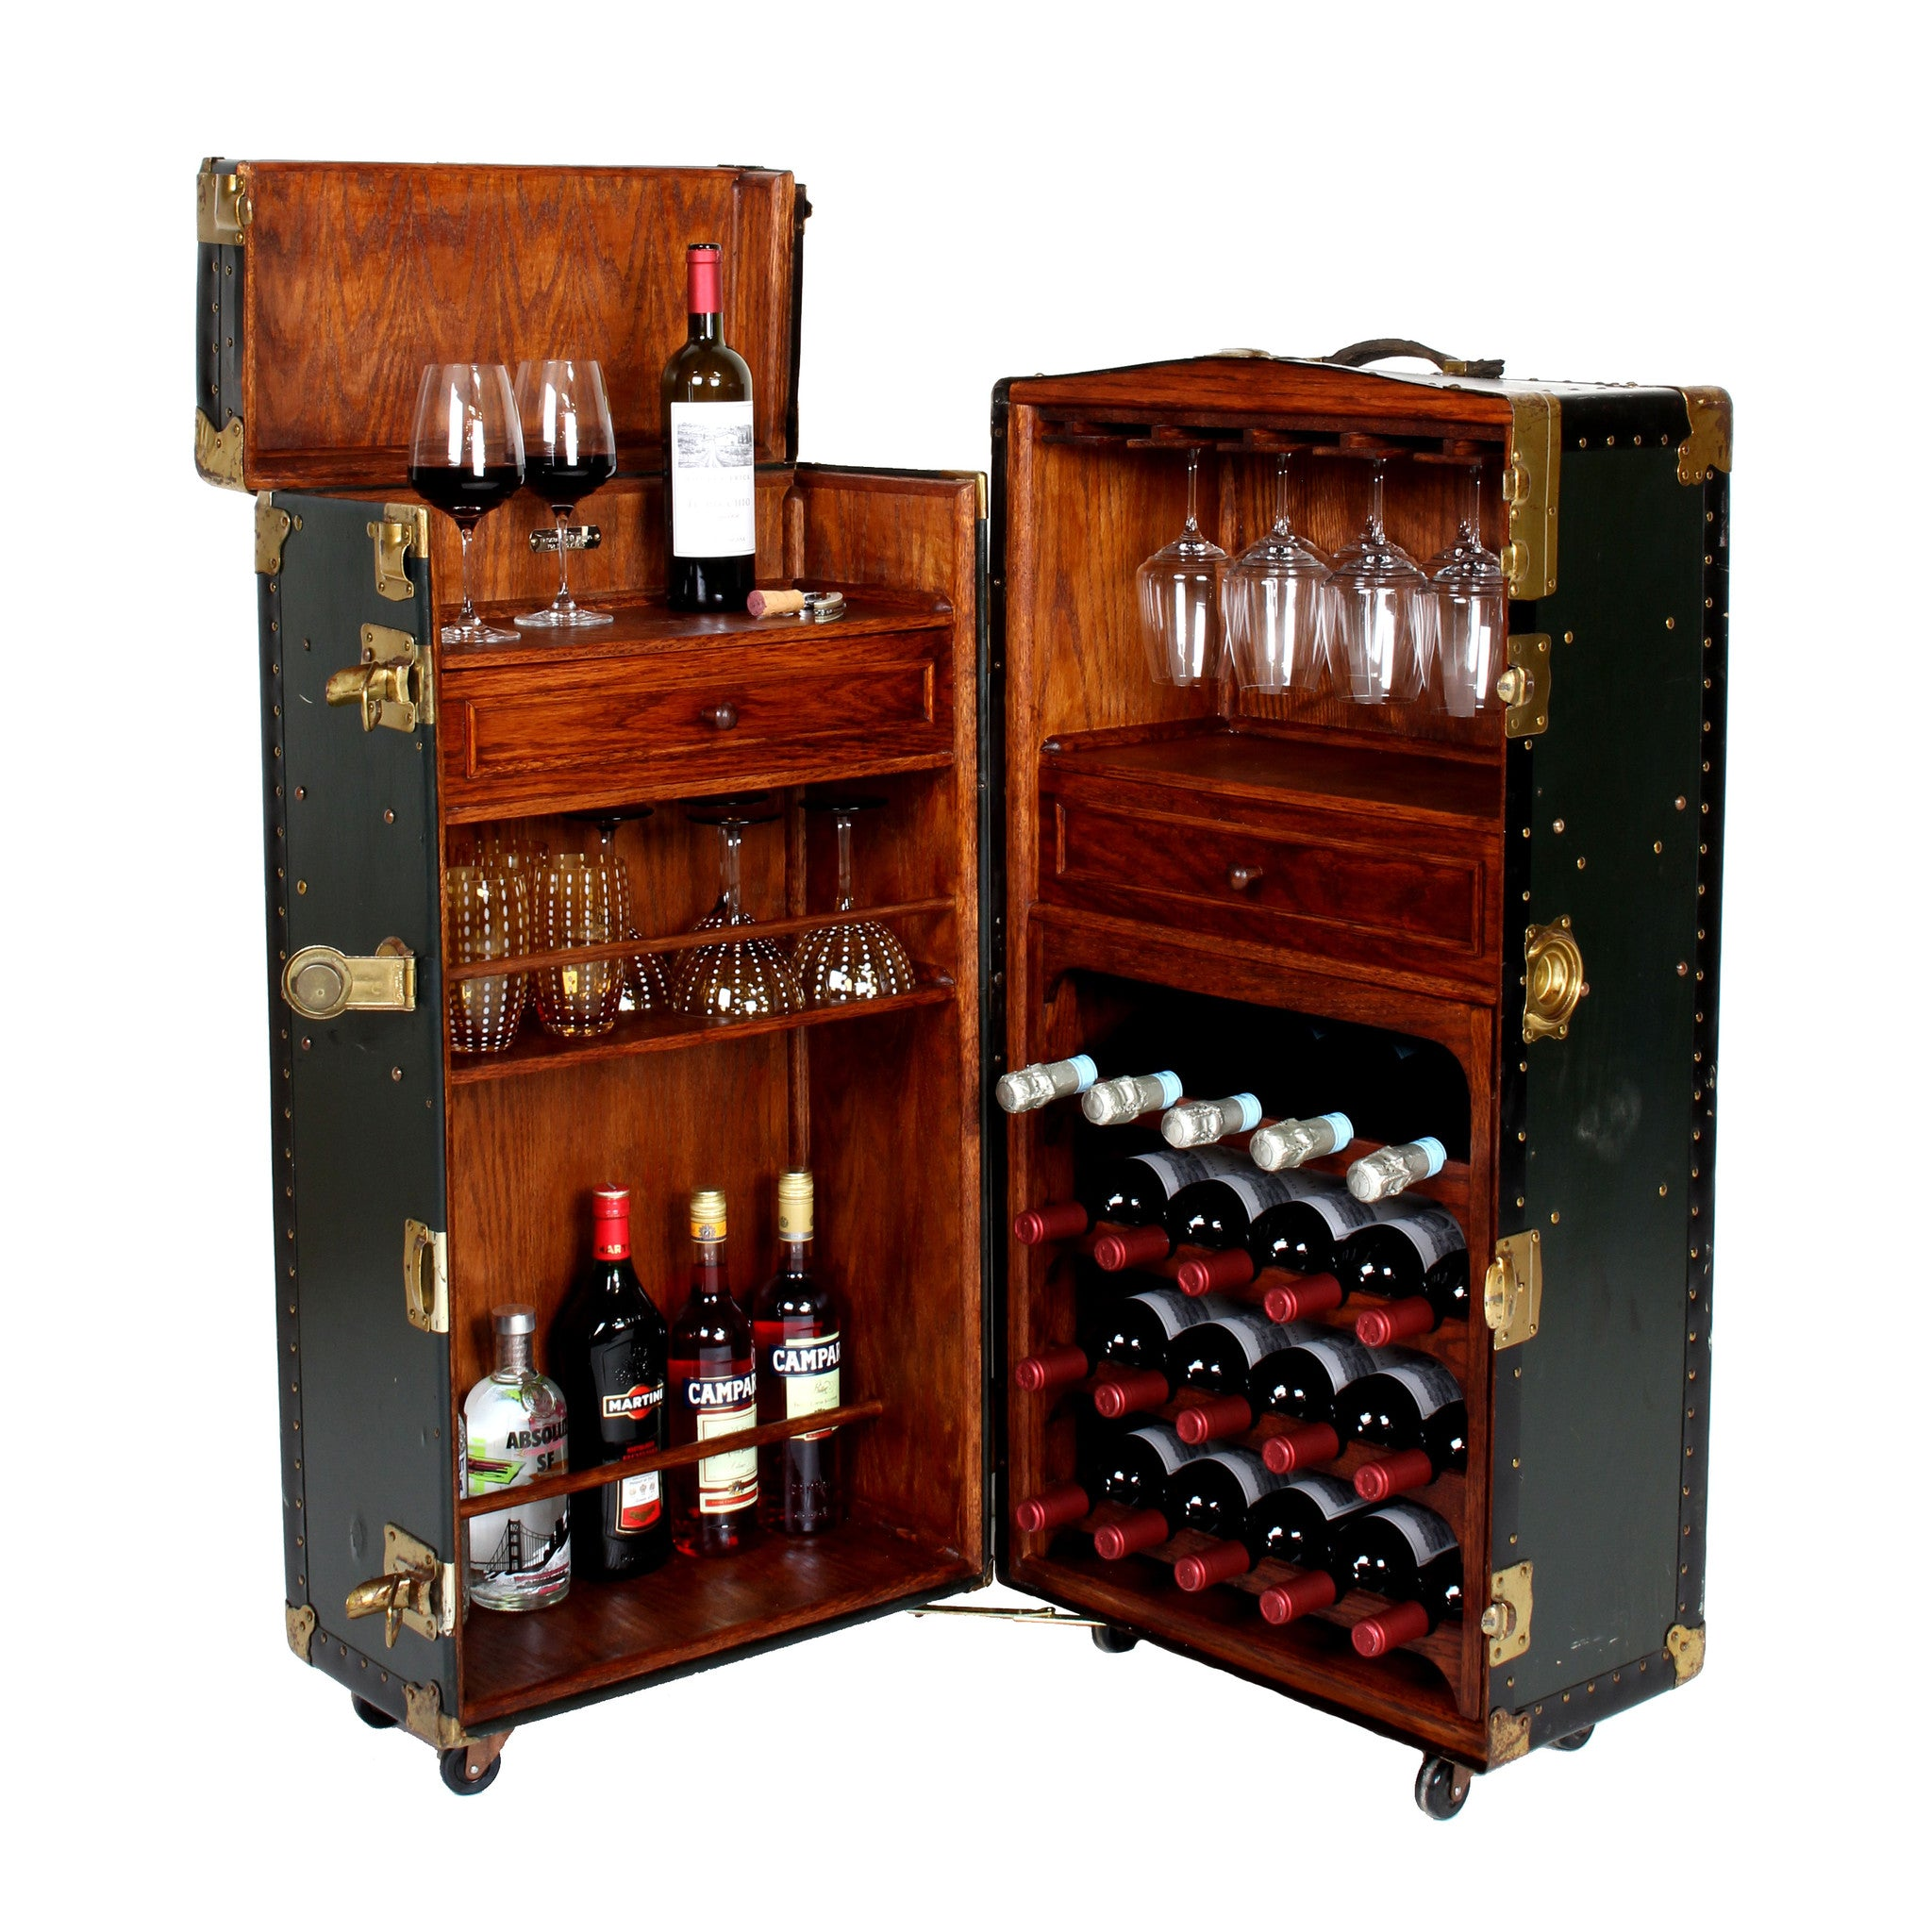 ... Vintage Steamer Trunk Bar Cabinet   Fatto A Mano Antiques   1 ...